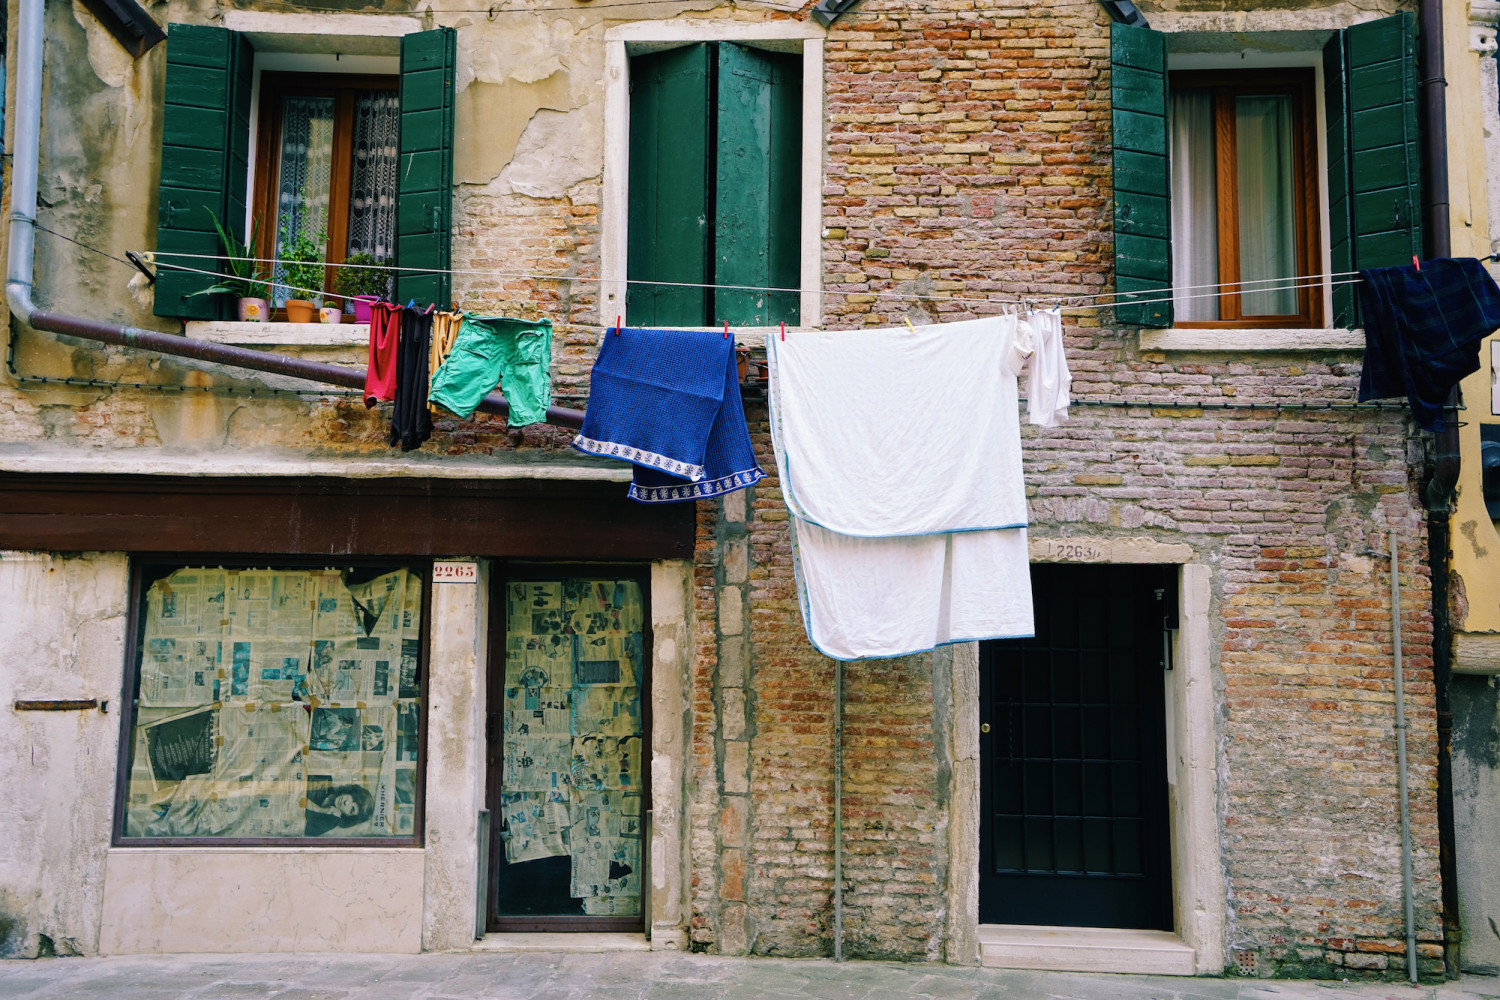 venice-laundry-dante-vincent-photography